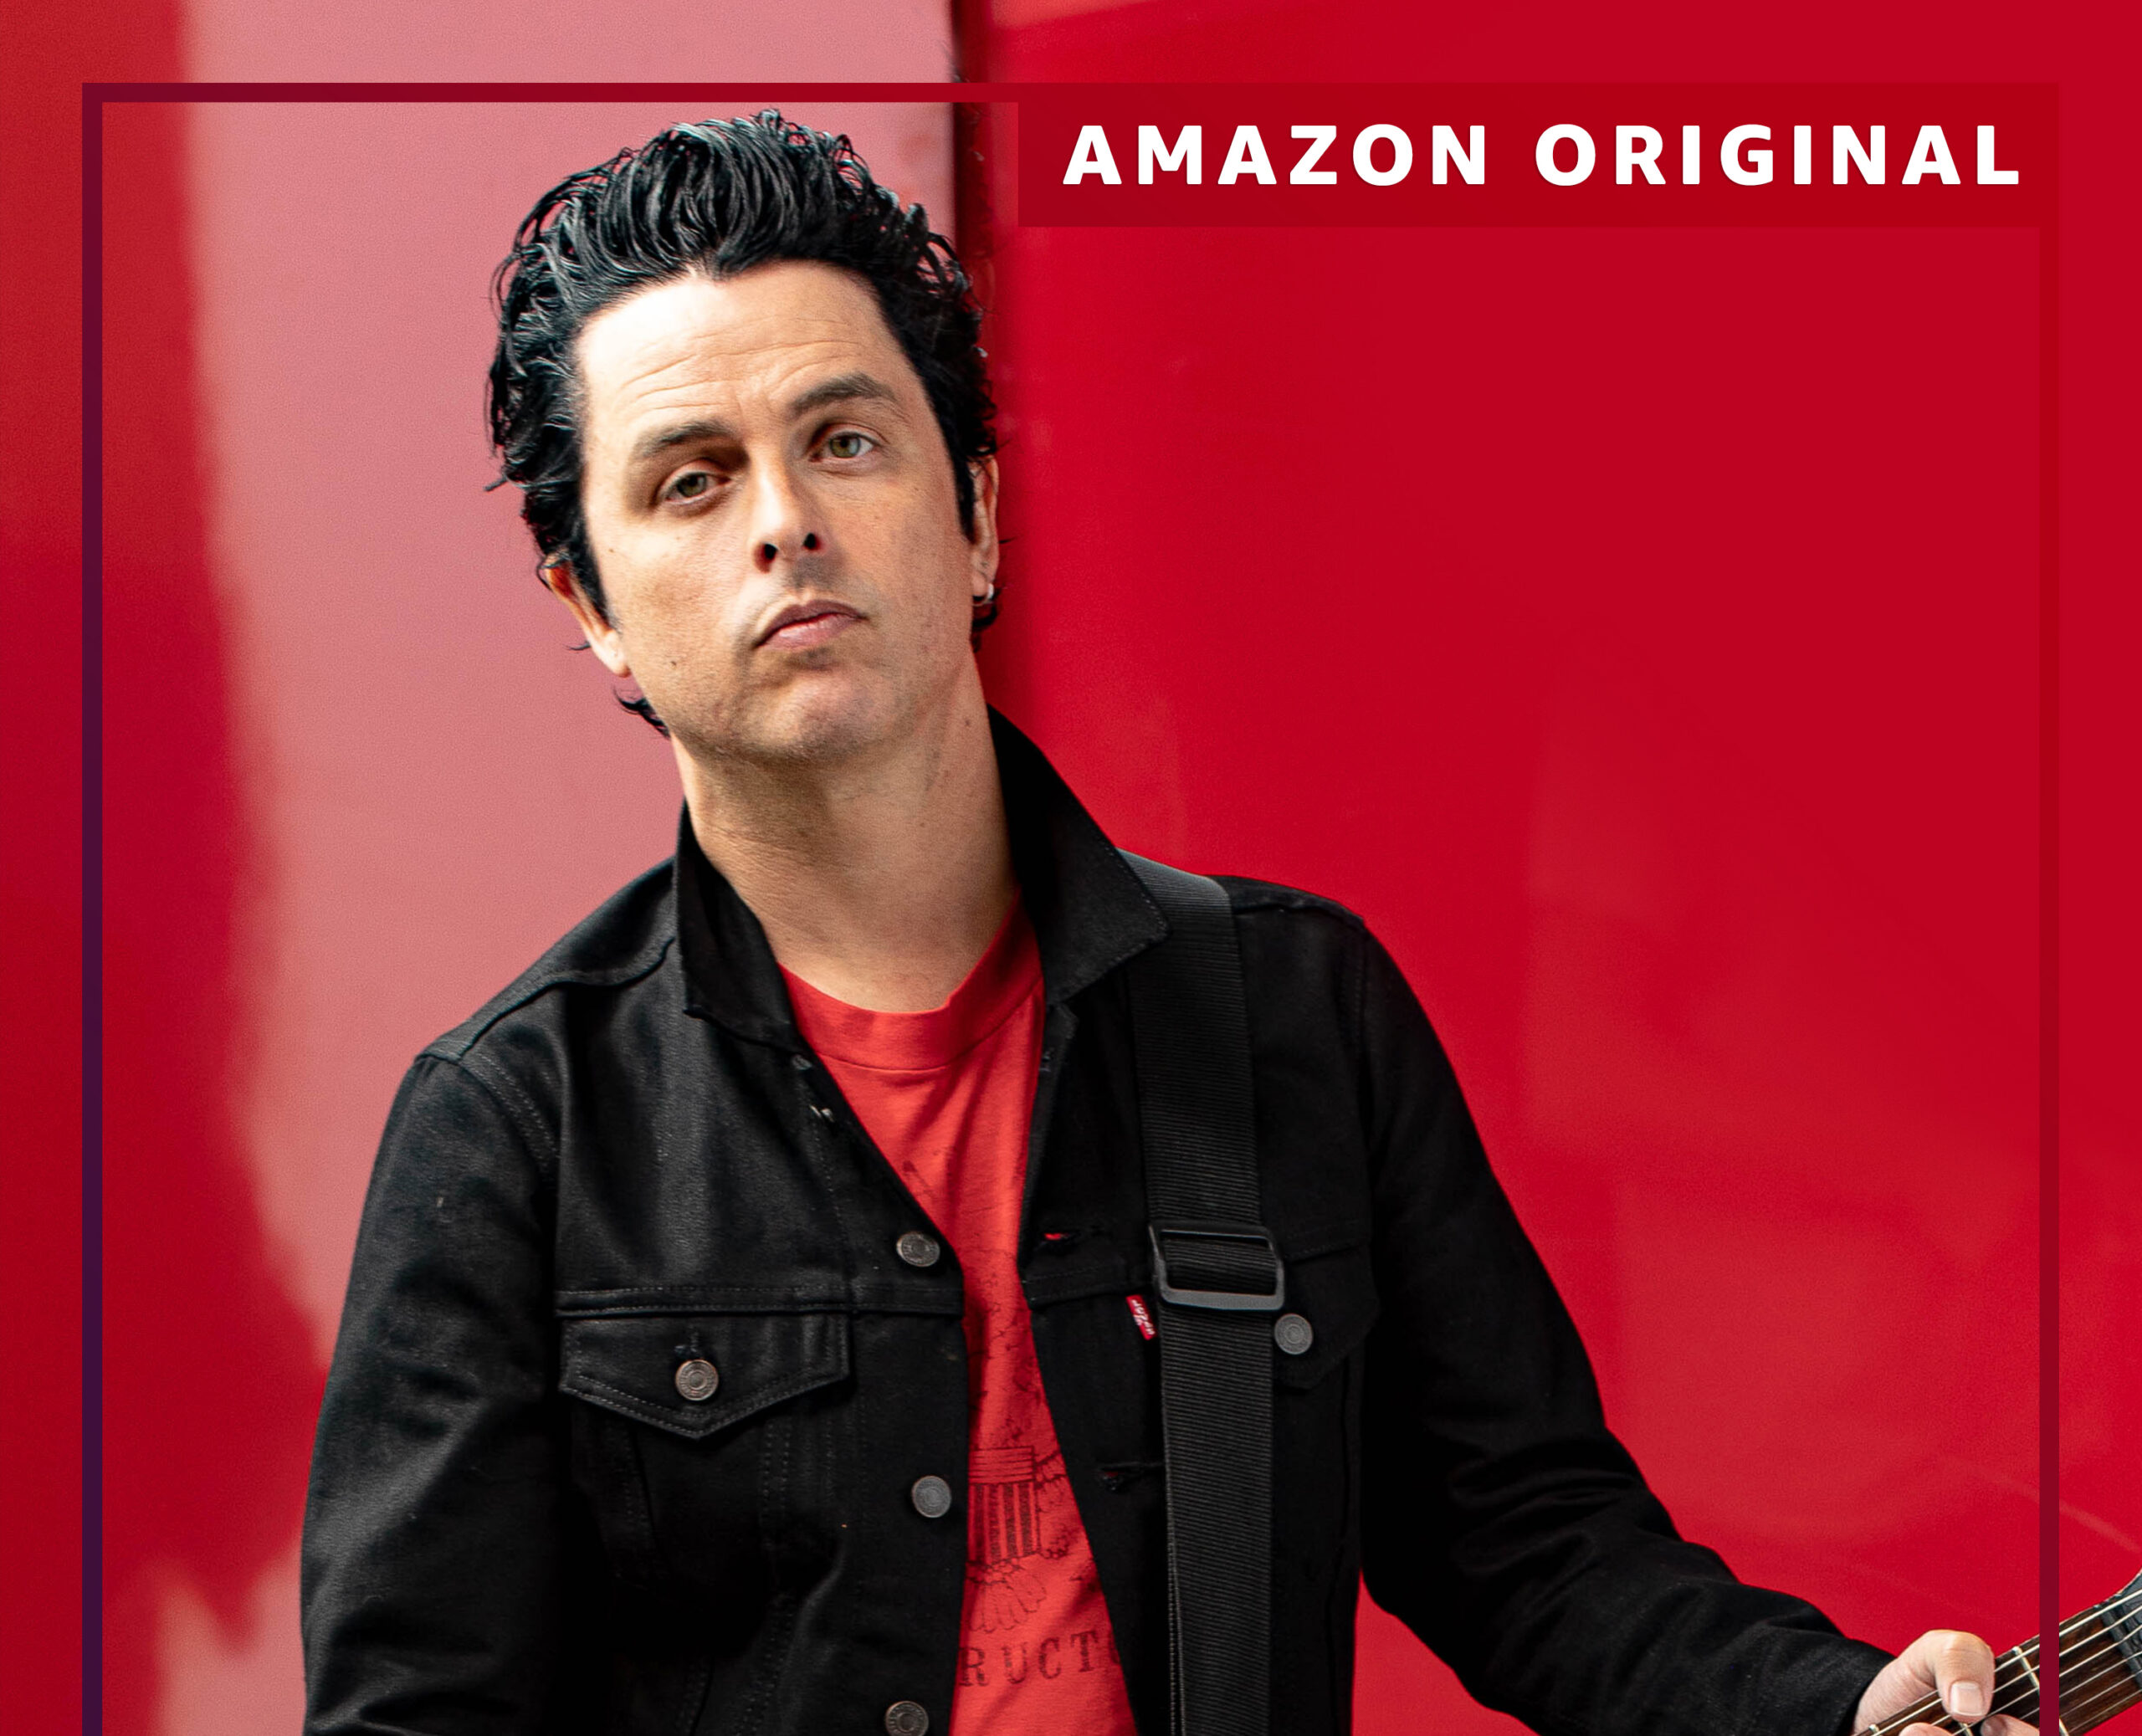 Green Day's BILLIE JOE ARMSTRONG Releases Amazon Original Cover of ...